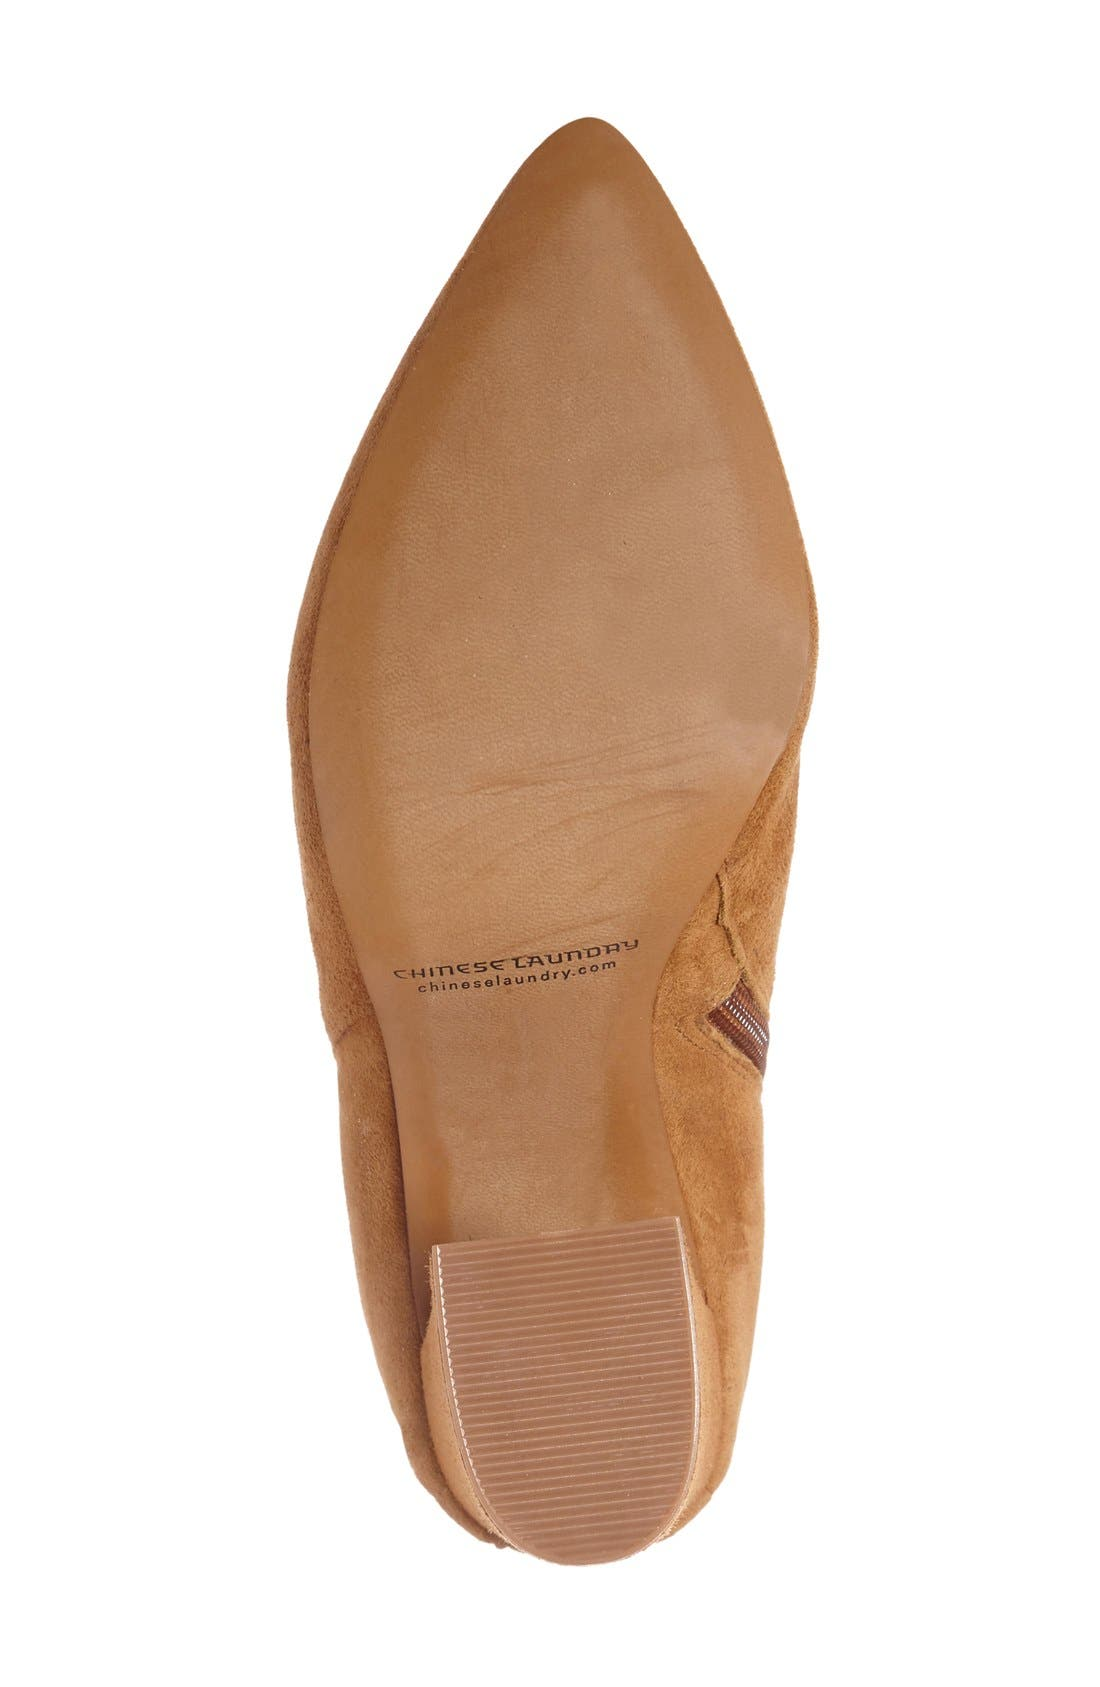 'Siren' Pointy Toe Bootie,                             Alternate thumbnail 4, color,                             Caramel Suede